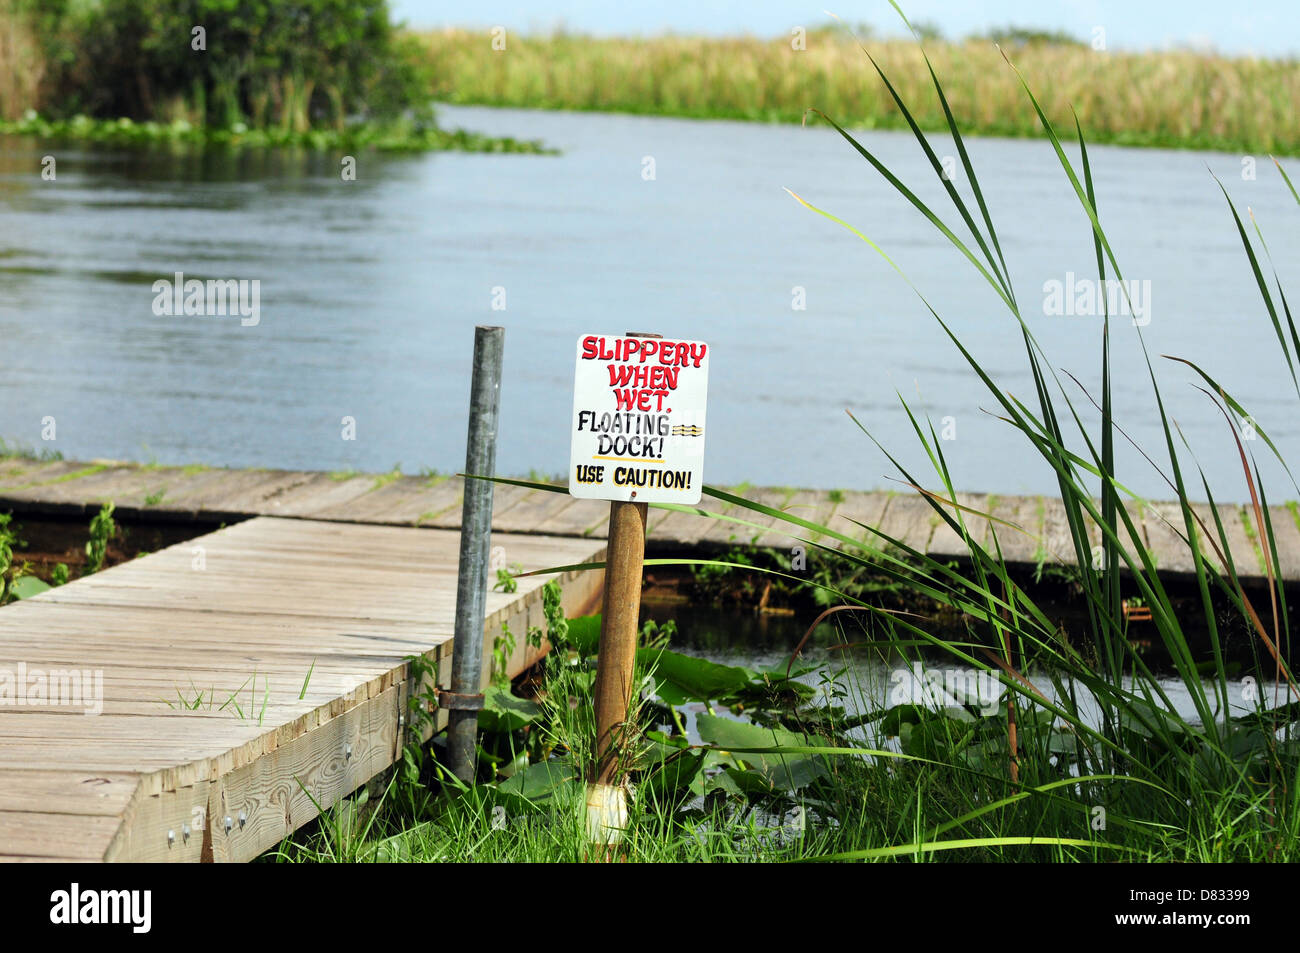 Slippery When Wet sign at floating dock near lake Stock Photo